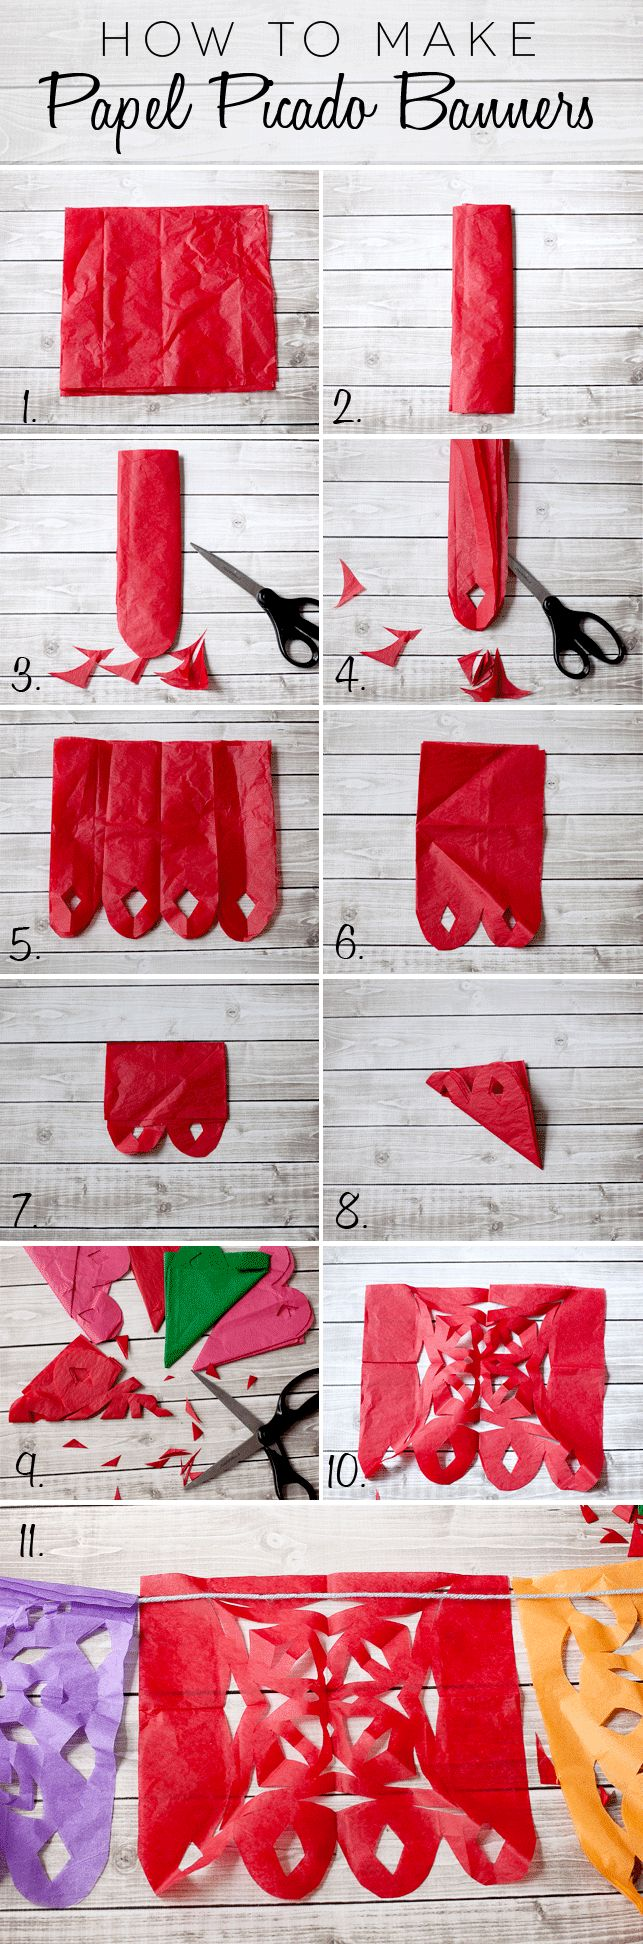 DIY ~ How to make mexican fiesta or Cinco de Mayo Papel Picado banners.